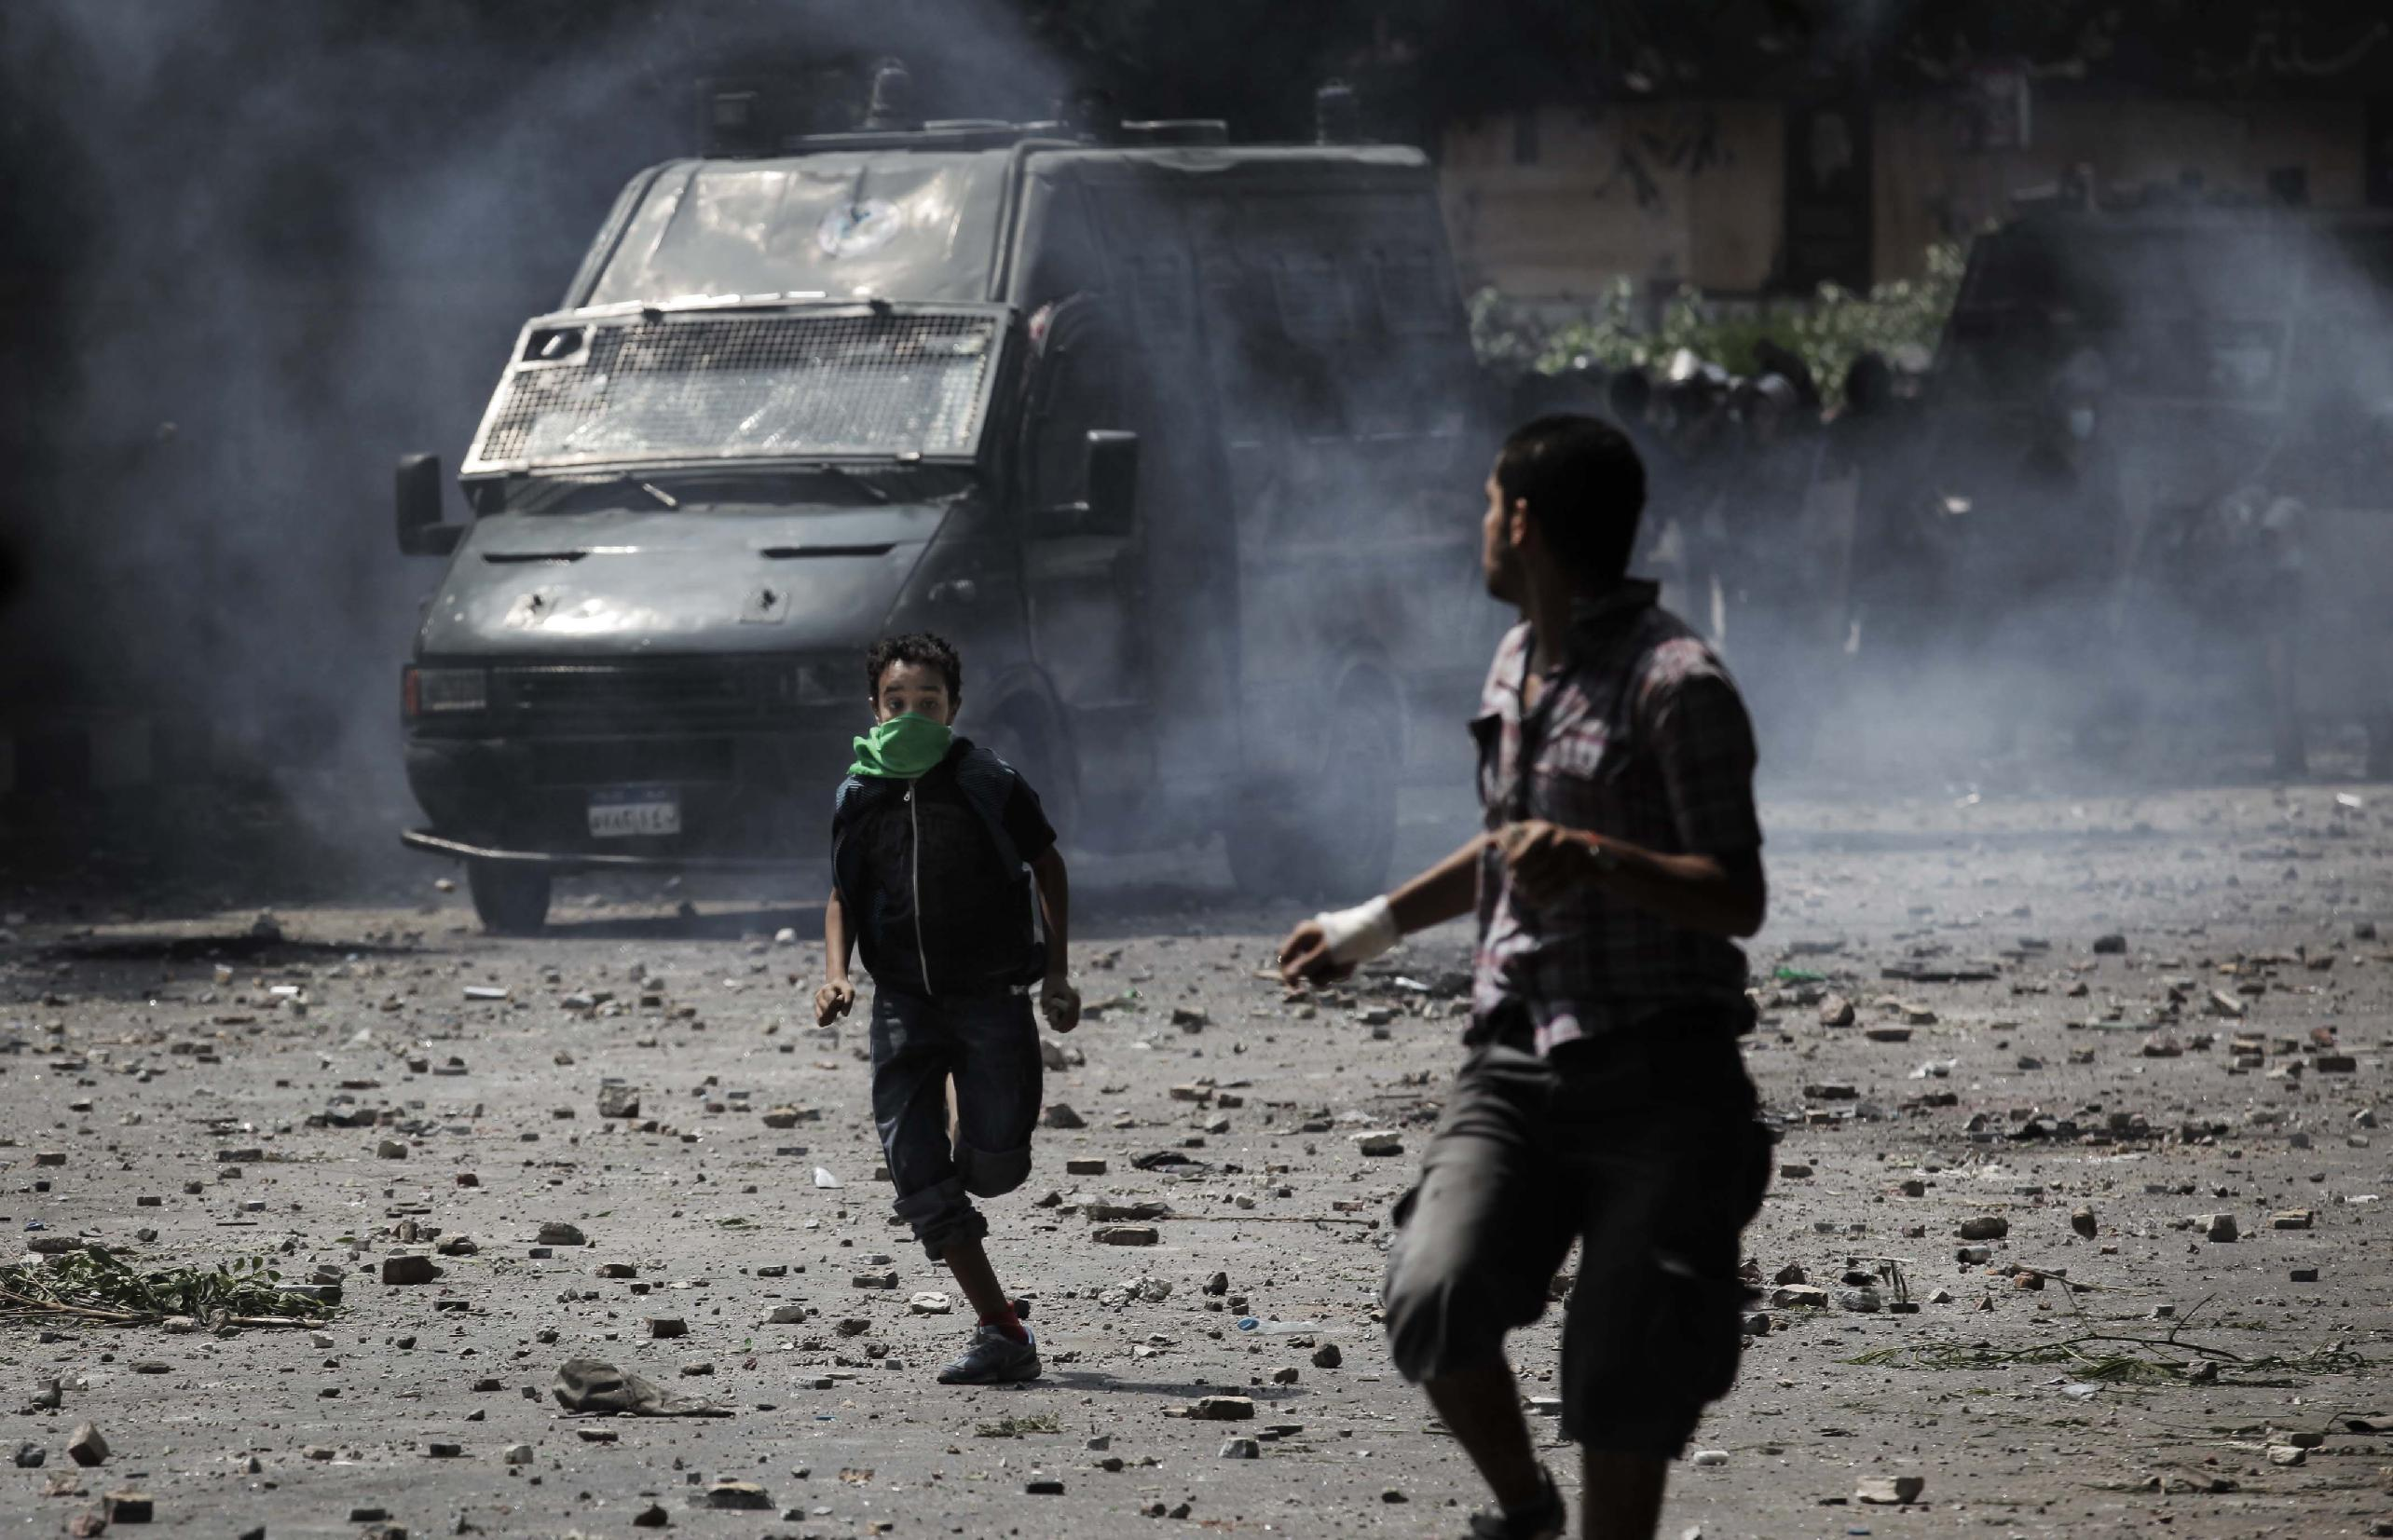 Egyptian protesters run during clashes with riot police, background, outside the U.S. embassy in Cairo, Egypt, Thursday, Sept. 13, 2012. Tens were injured in clashes in front of the U.S. embassy in Cairo, the state TV reported on Thursday, quoting Egypt's Health Ministry. (AP Photo/Nasser Nasser)